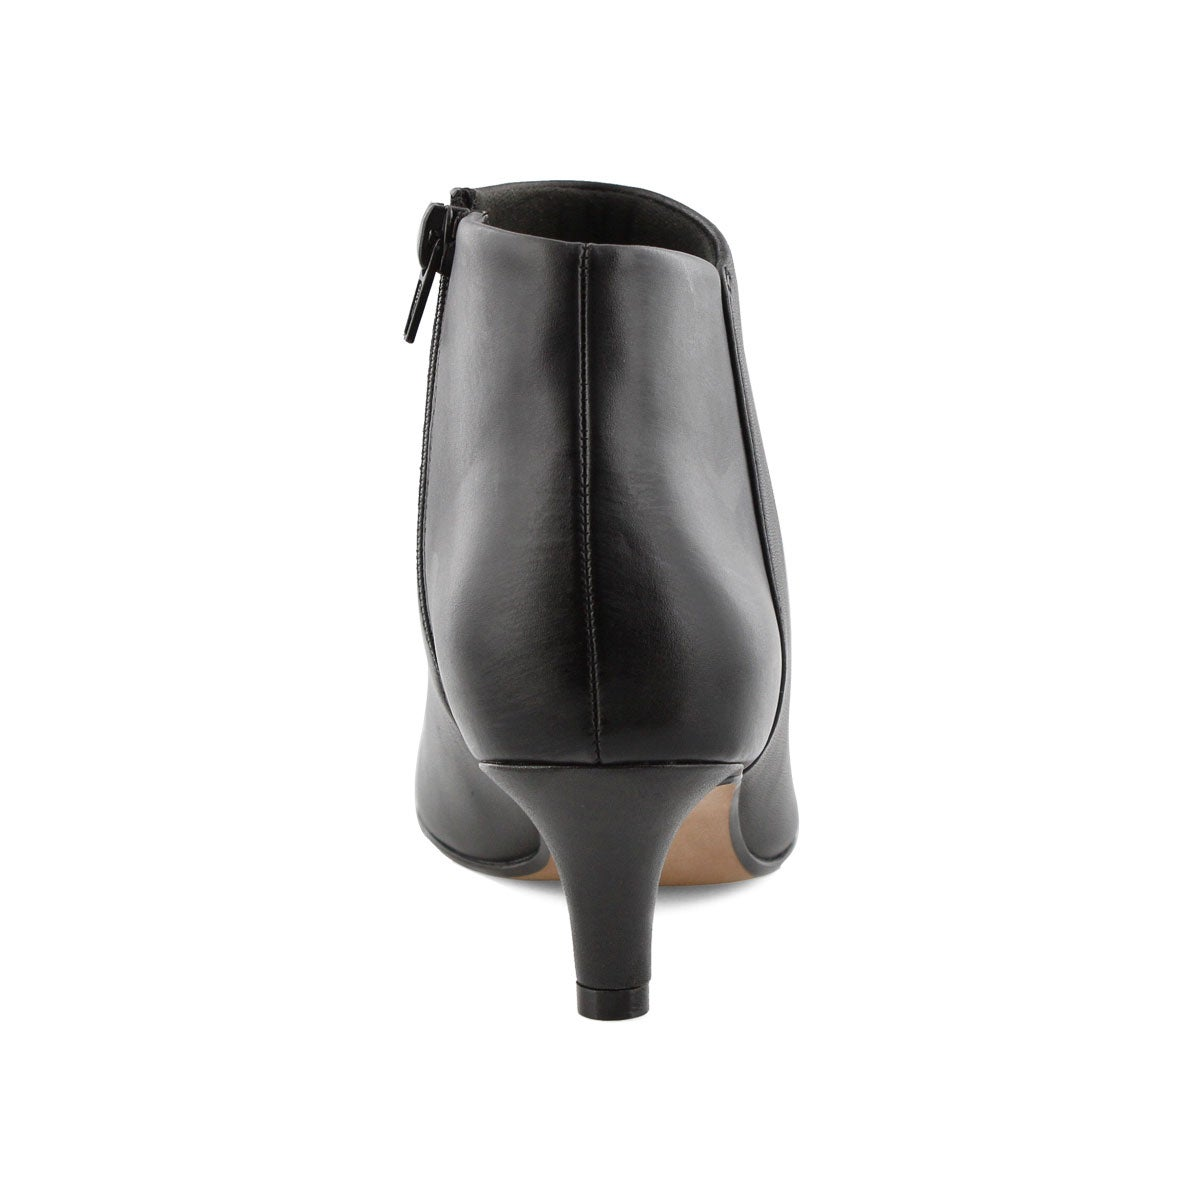 Lds Linvale Sea blk lthr dress bootie